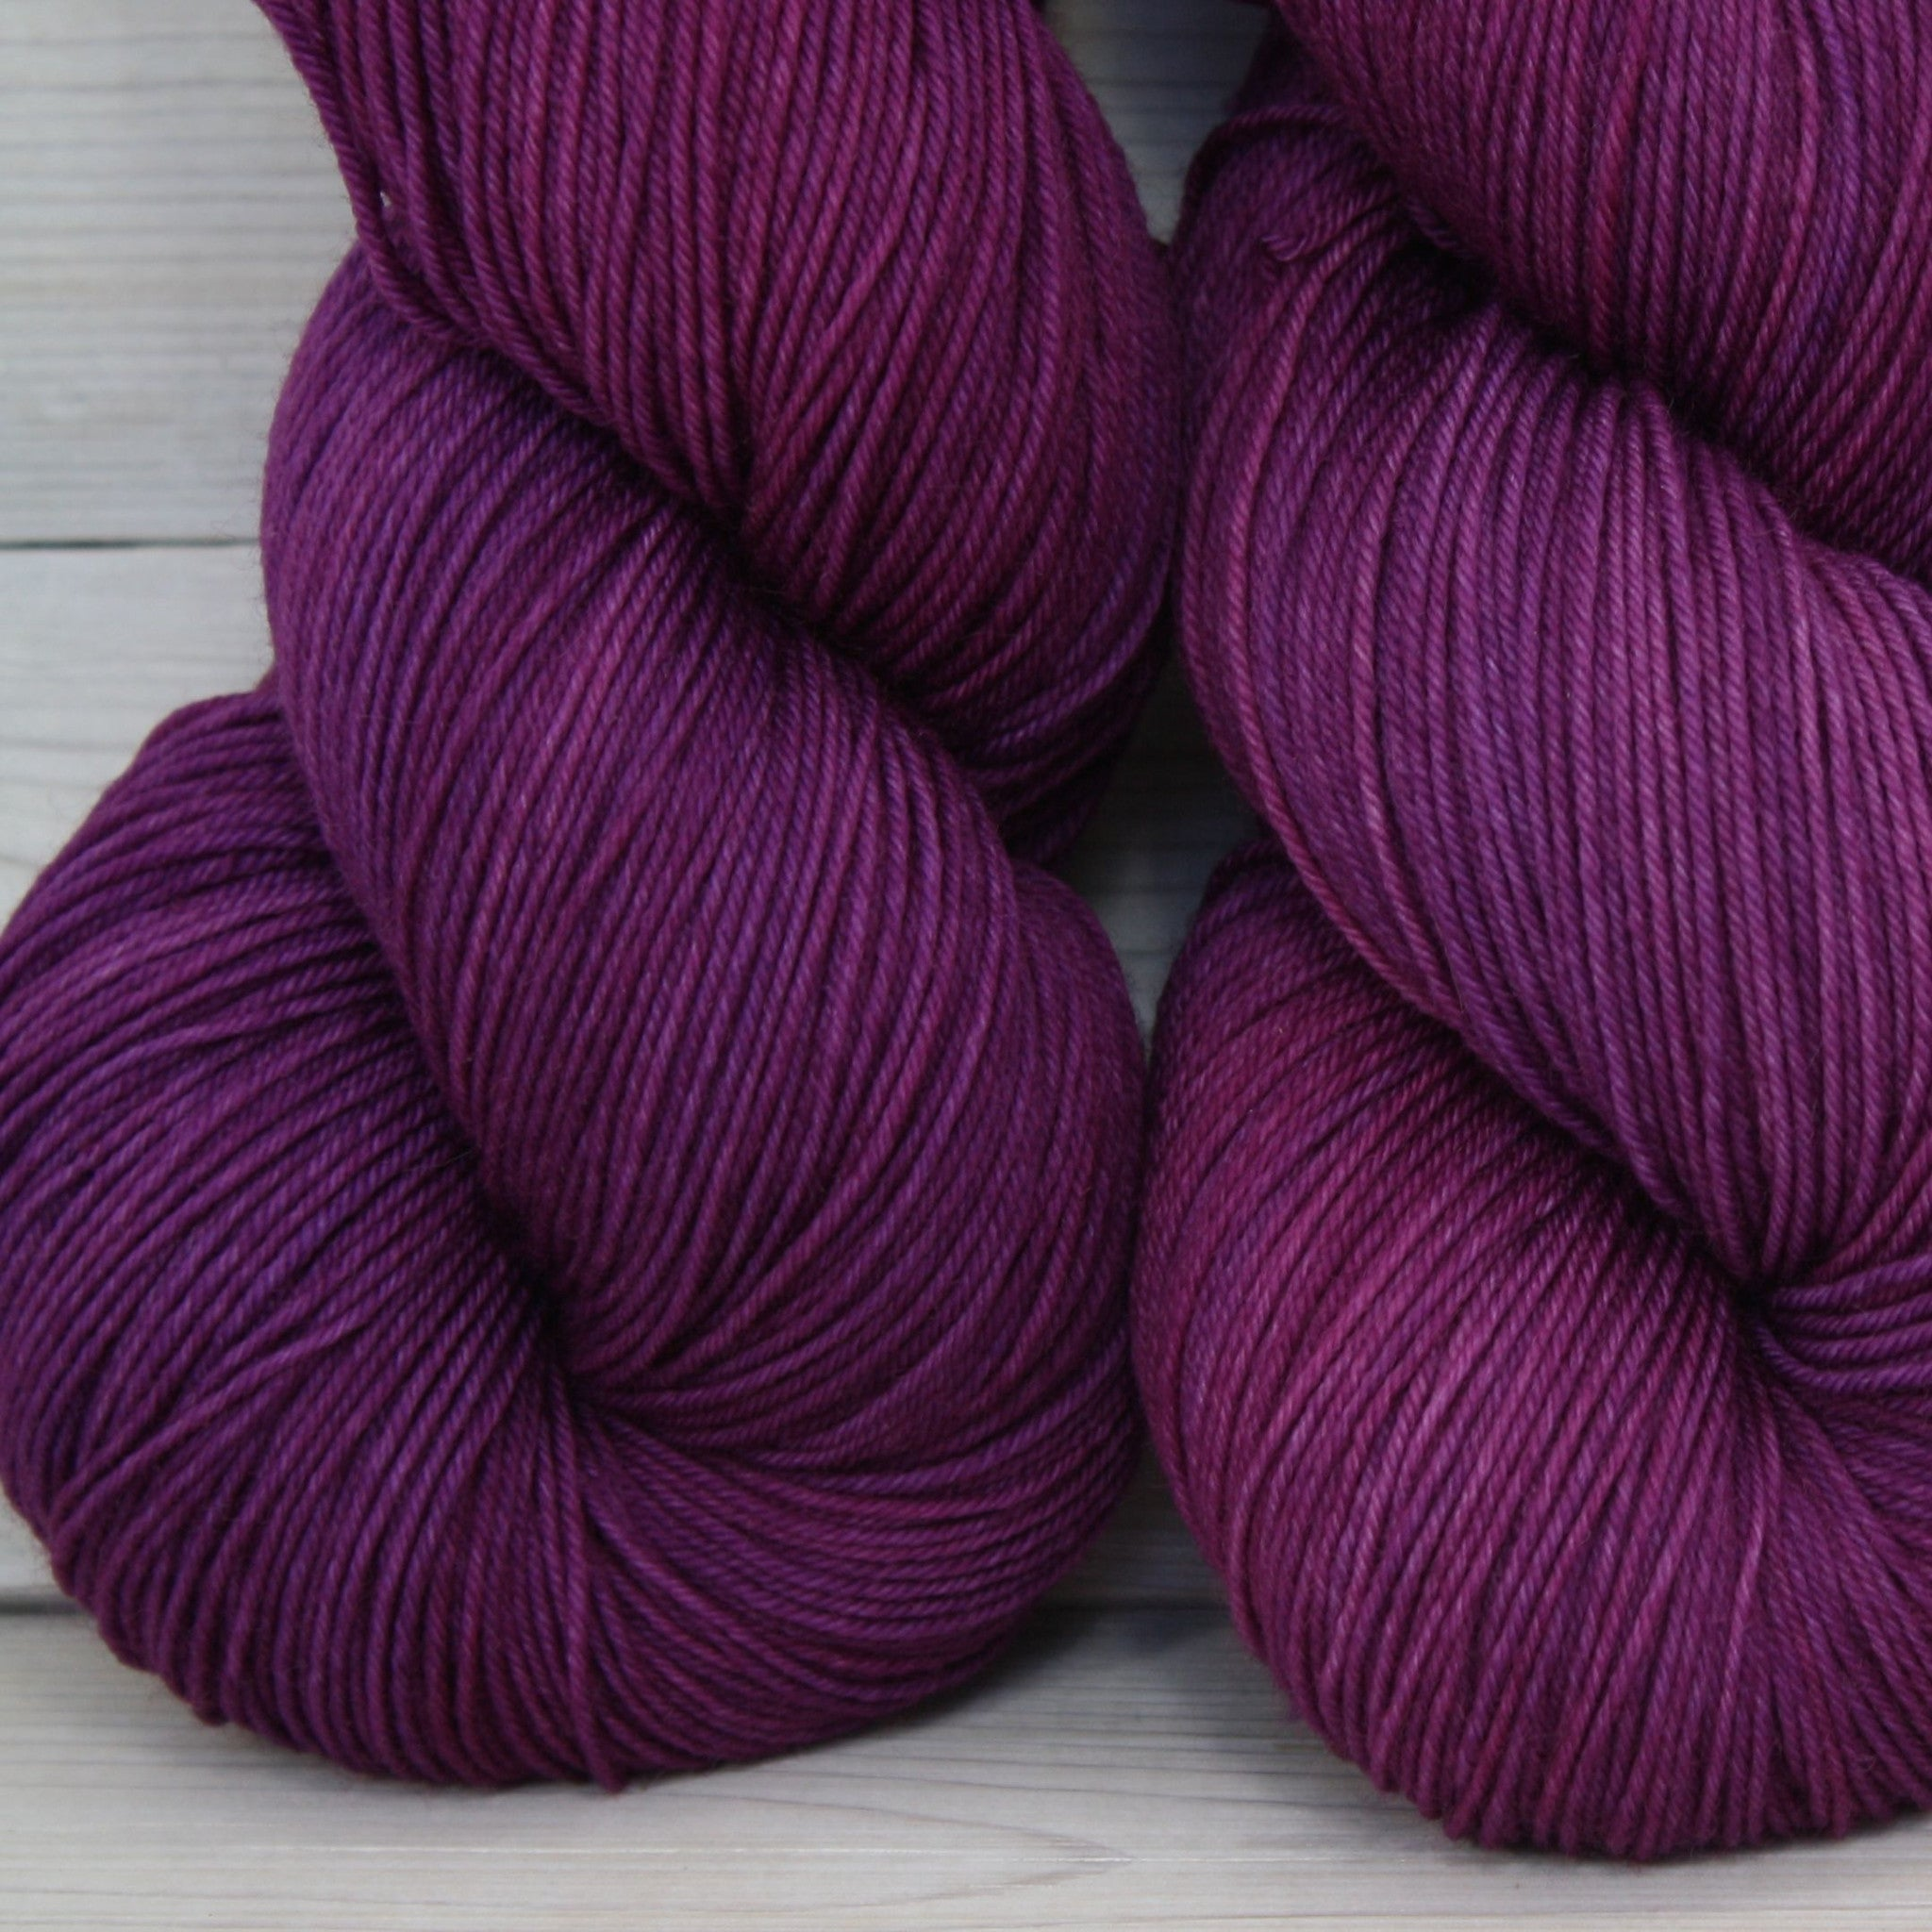 Athena Sock Yarn | Colorway: Jelly Bean